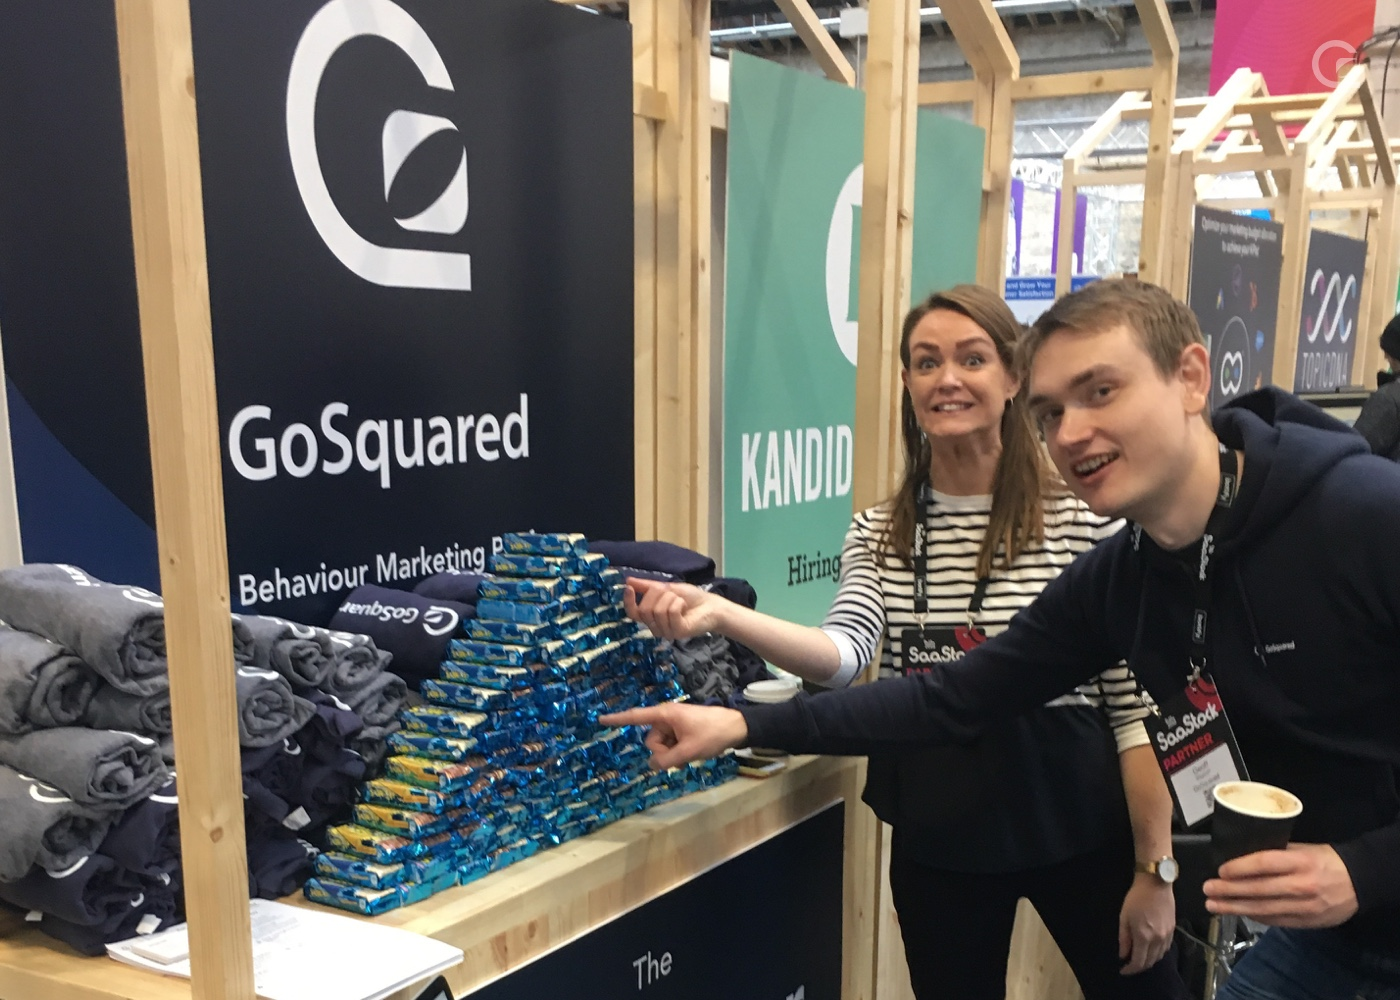 photo of Sinead and Geoff at the GoSquared stand pointing at rice krispy squares